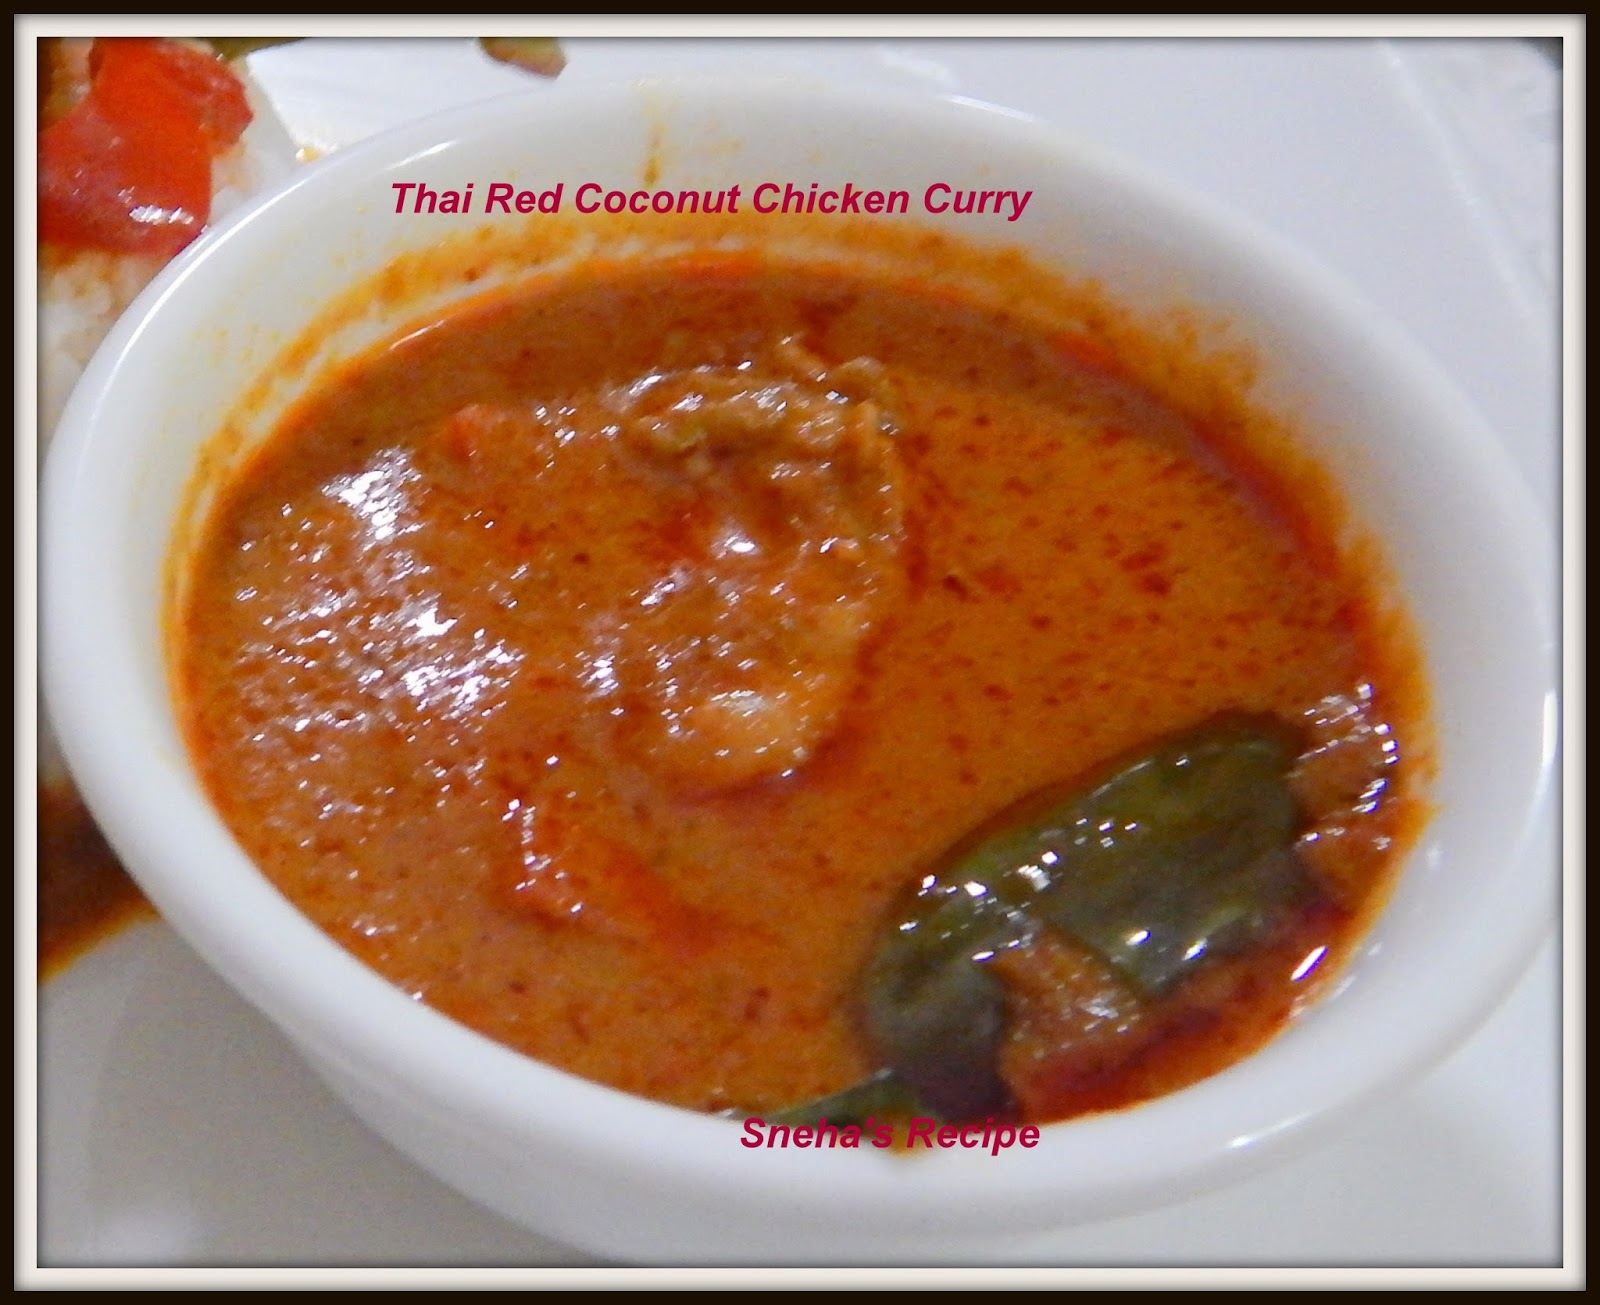 Thai red coconut chicken curry snehas recipe heat oil to wok stir fry eggplants onion garlic ginger and curry paste until onion is softened about 3 minutes then add the chicken pieces and stir forumfinder Gallery